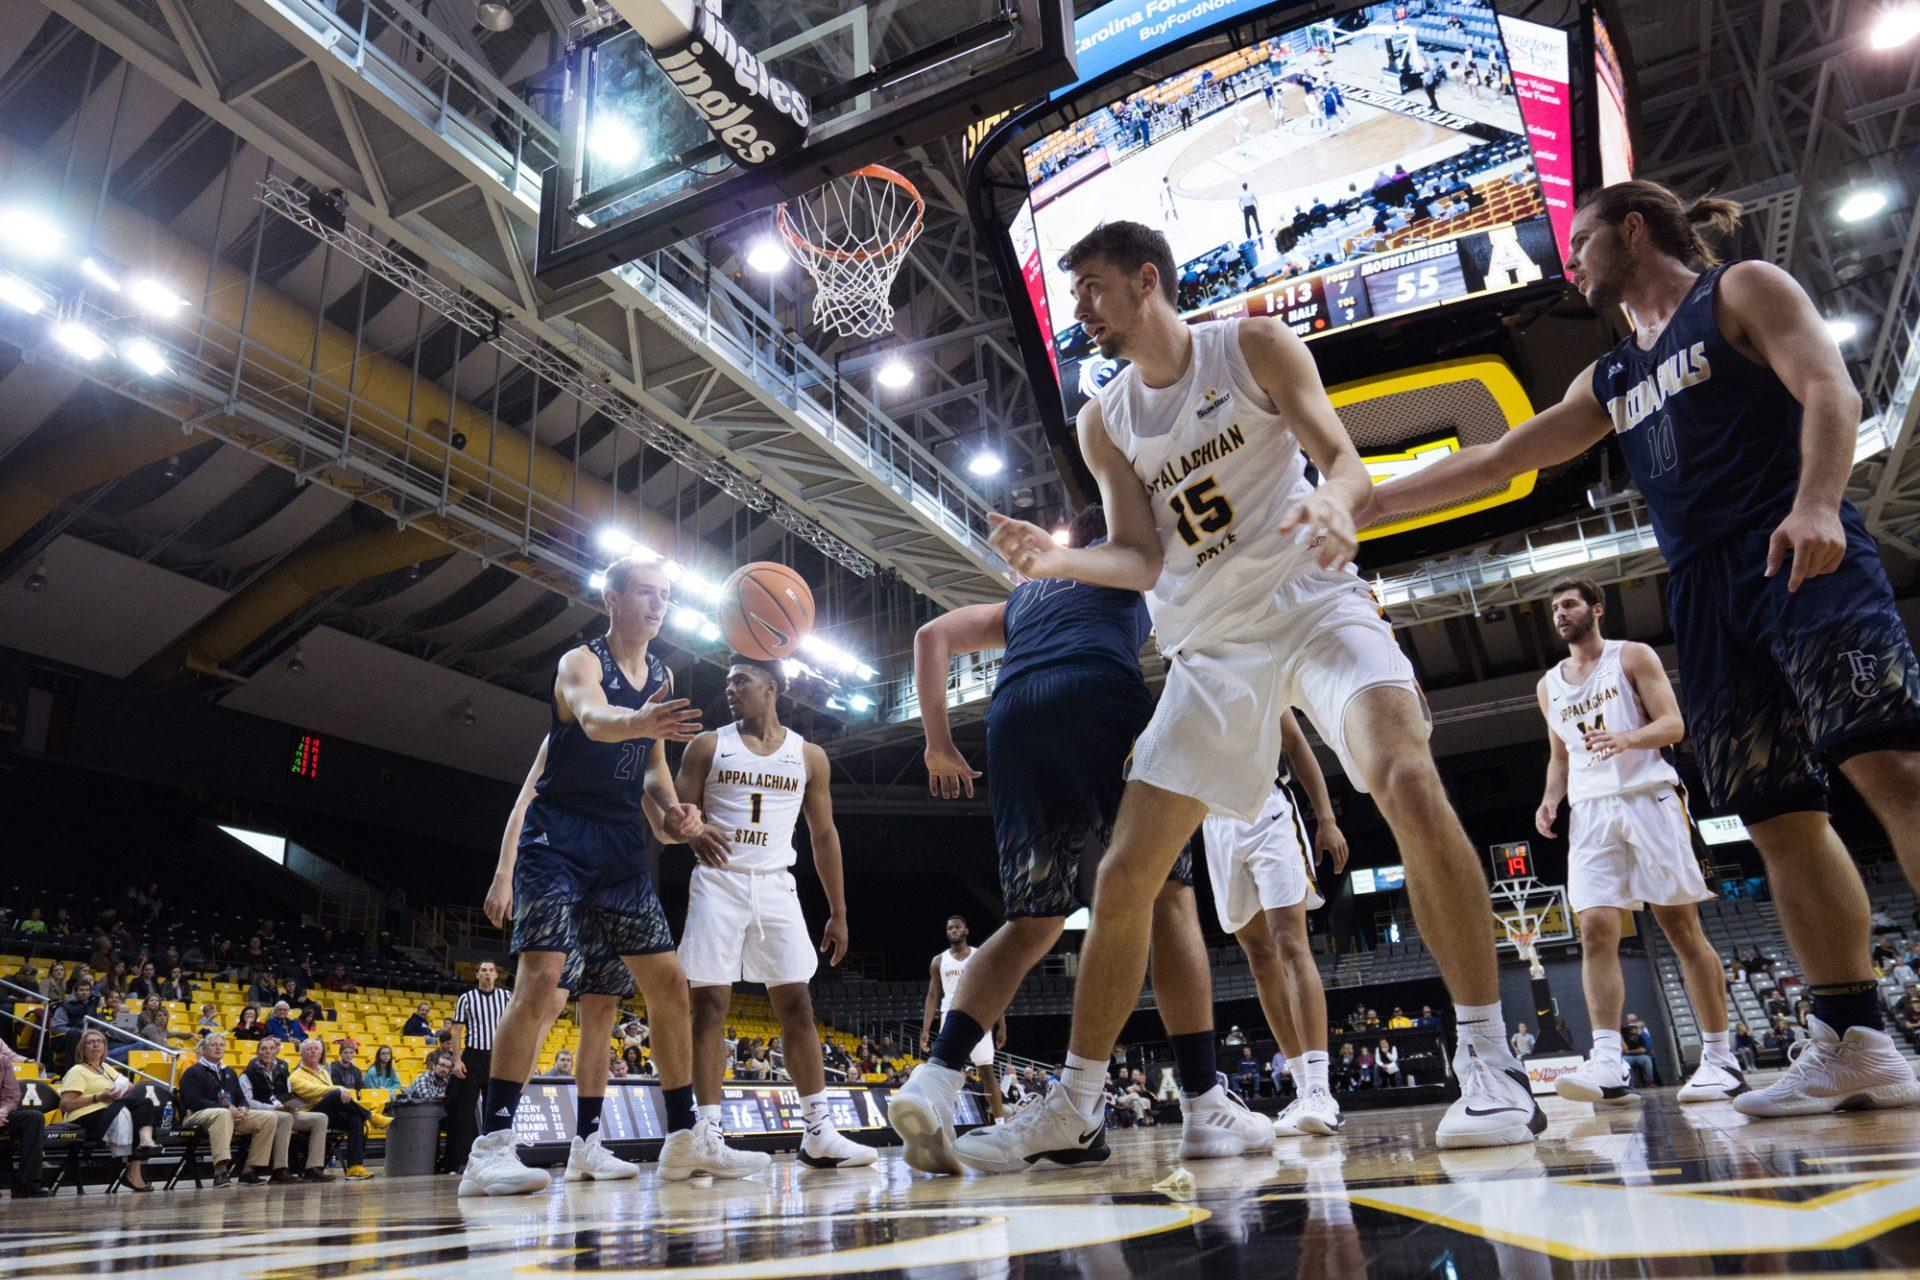 Hoops Grades: App State MBB vs. Toccoa Falls and Bridgewater College